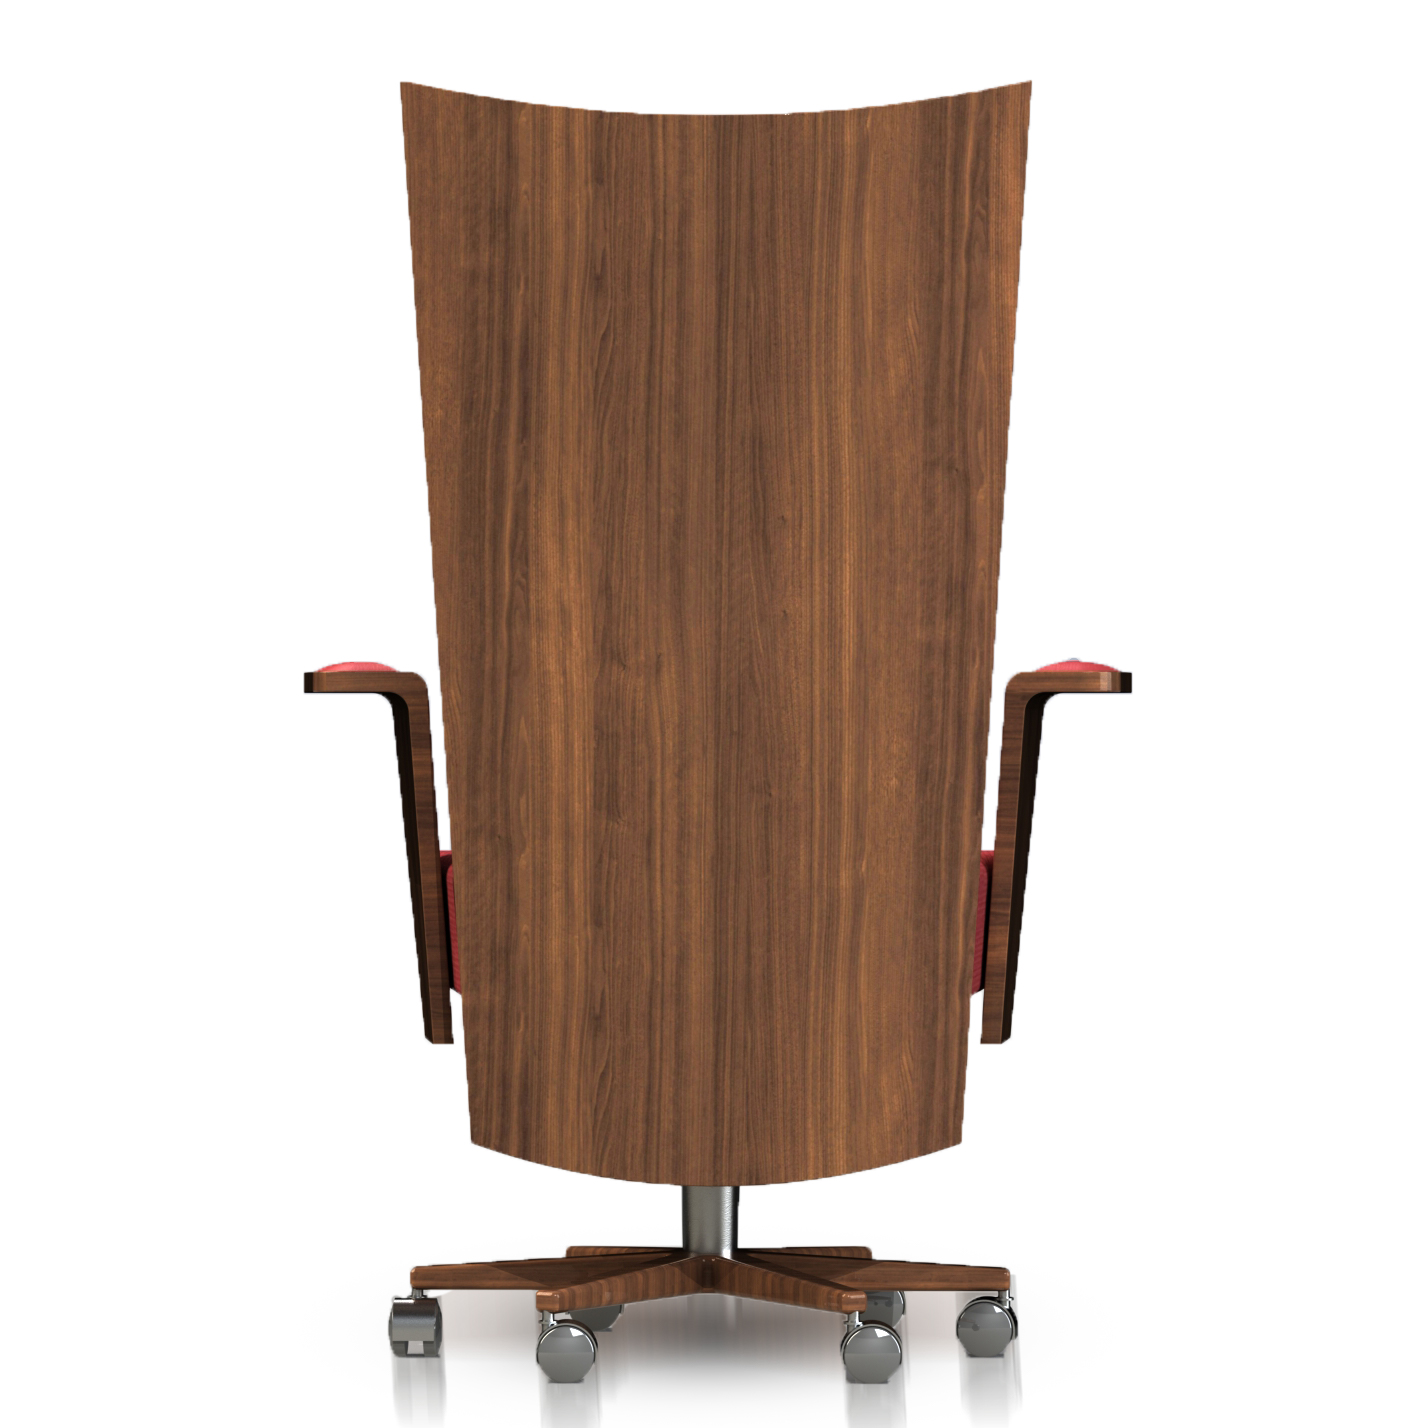 Giancarlo_Studio_Furniture_Executive_Chair_4.jpg